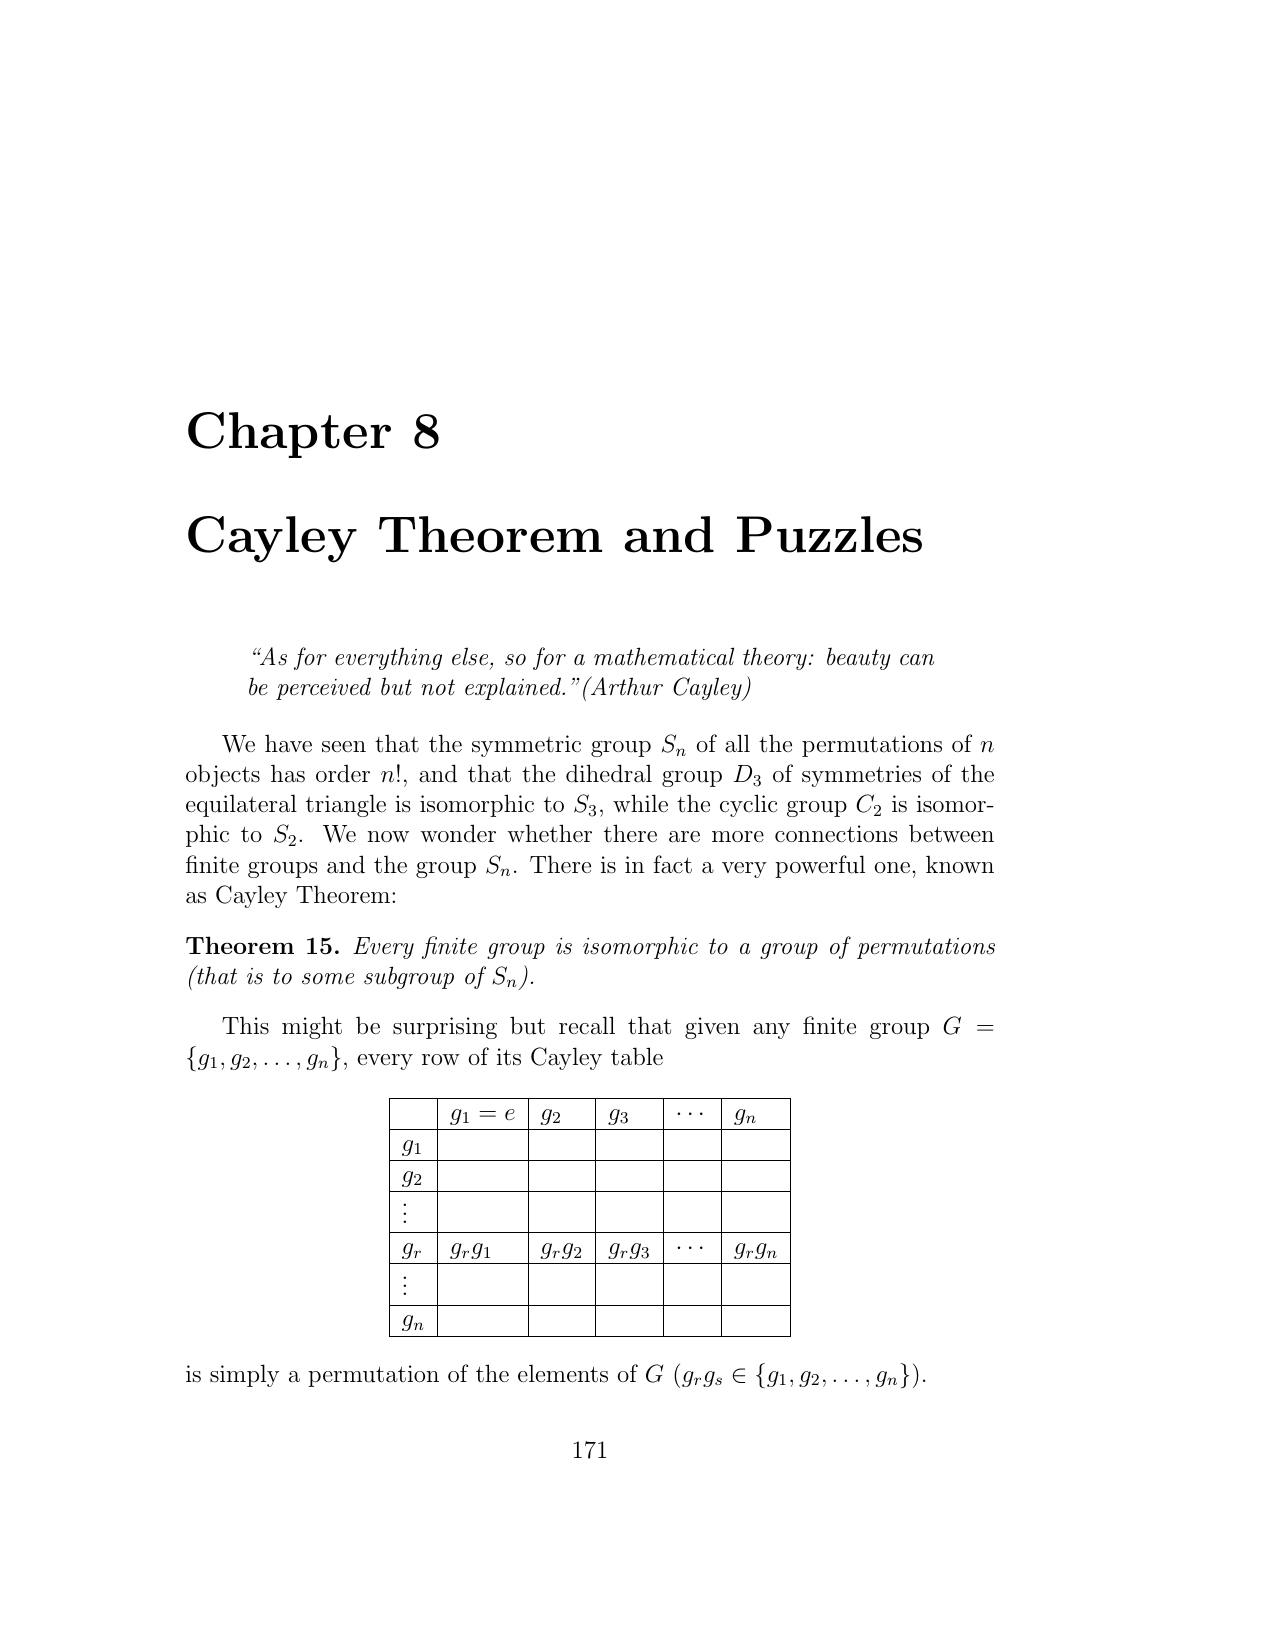 Chapter 8 Cayley Theorem and Puzzles